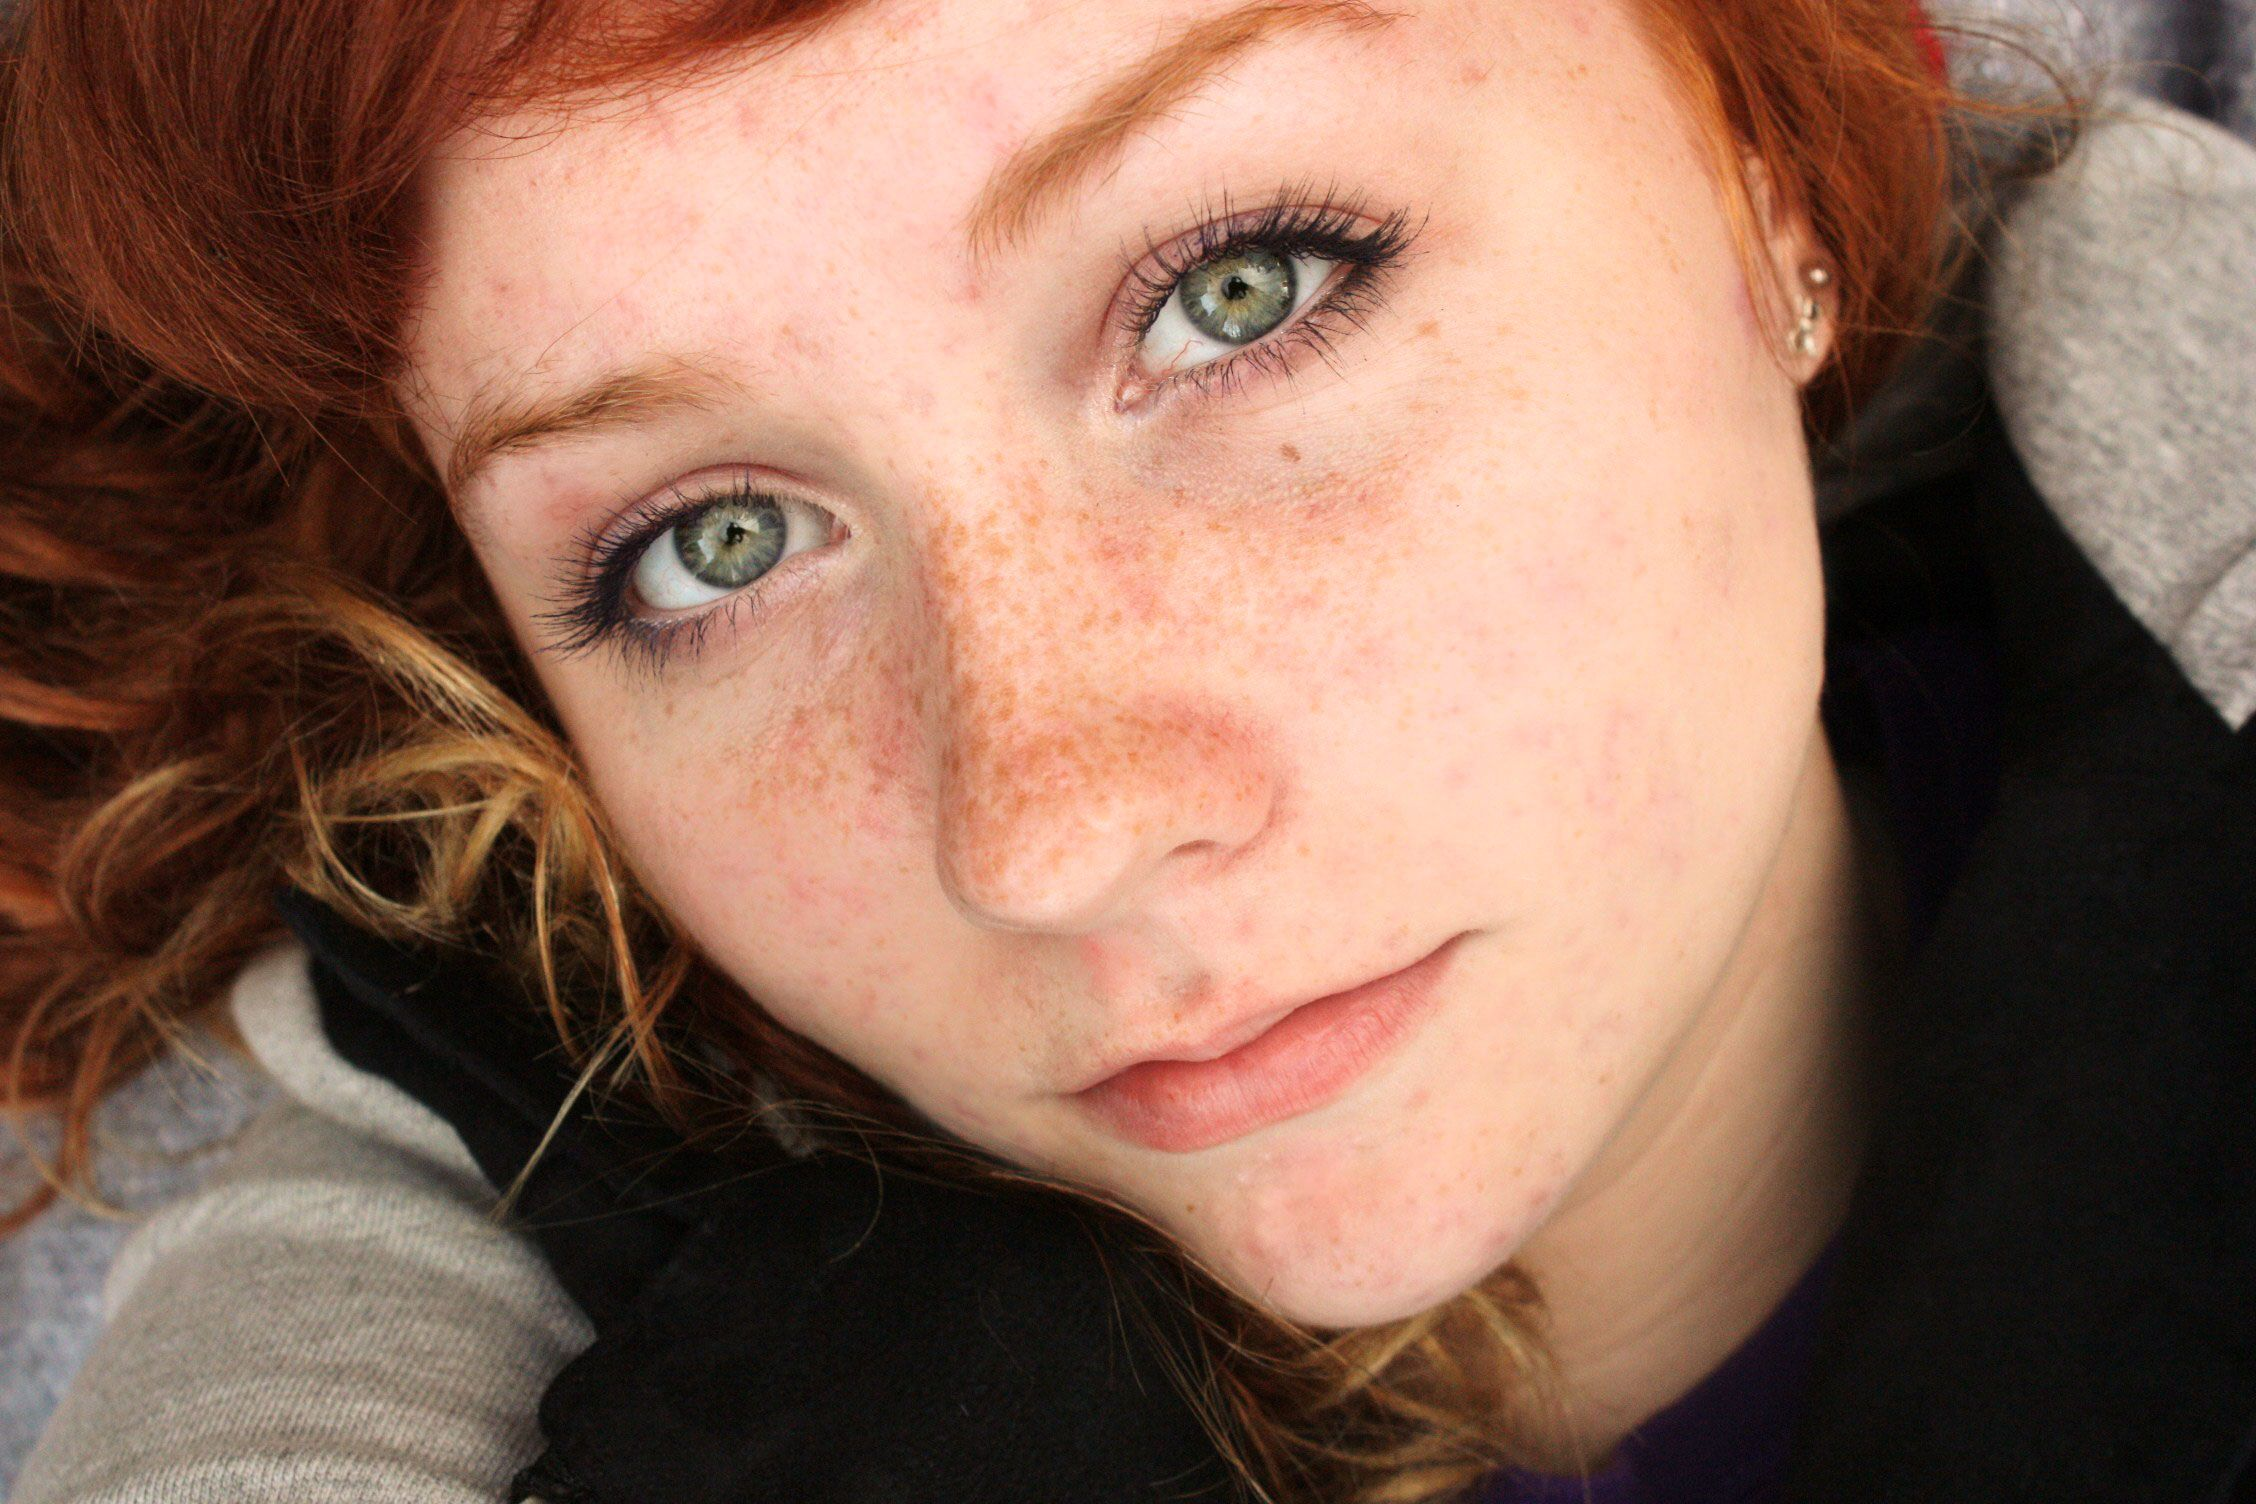 Something Red hair freckles green eyes